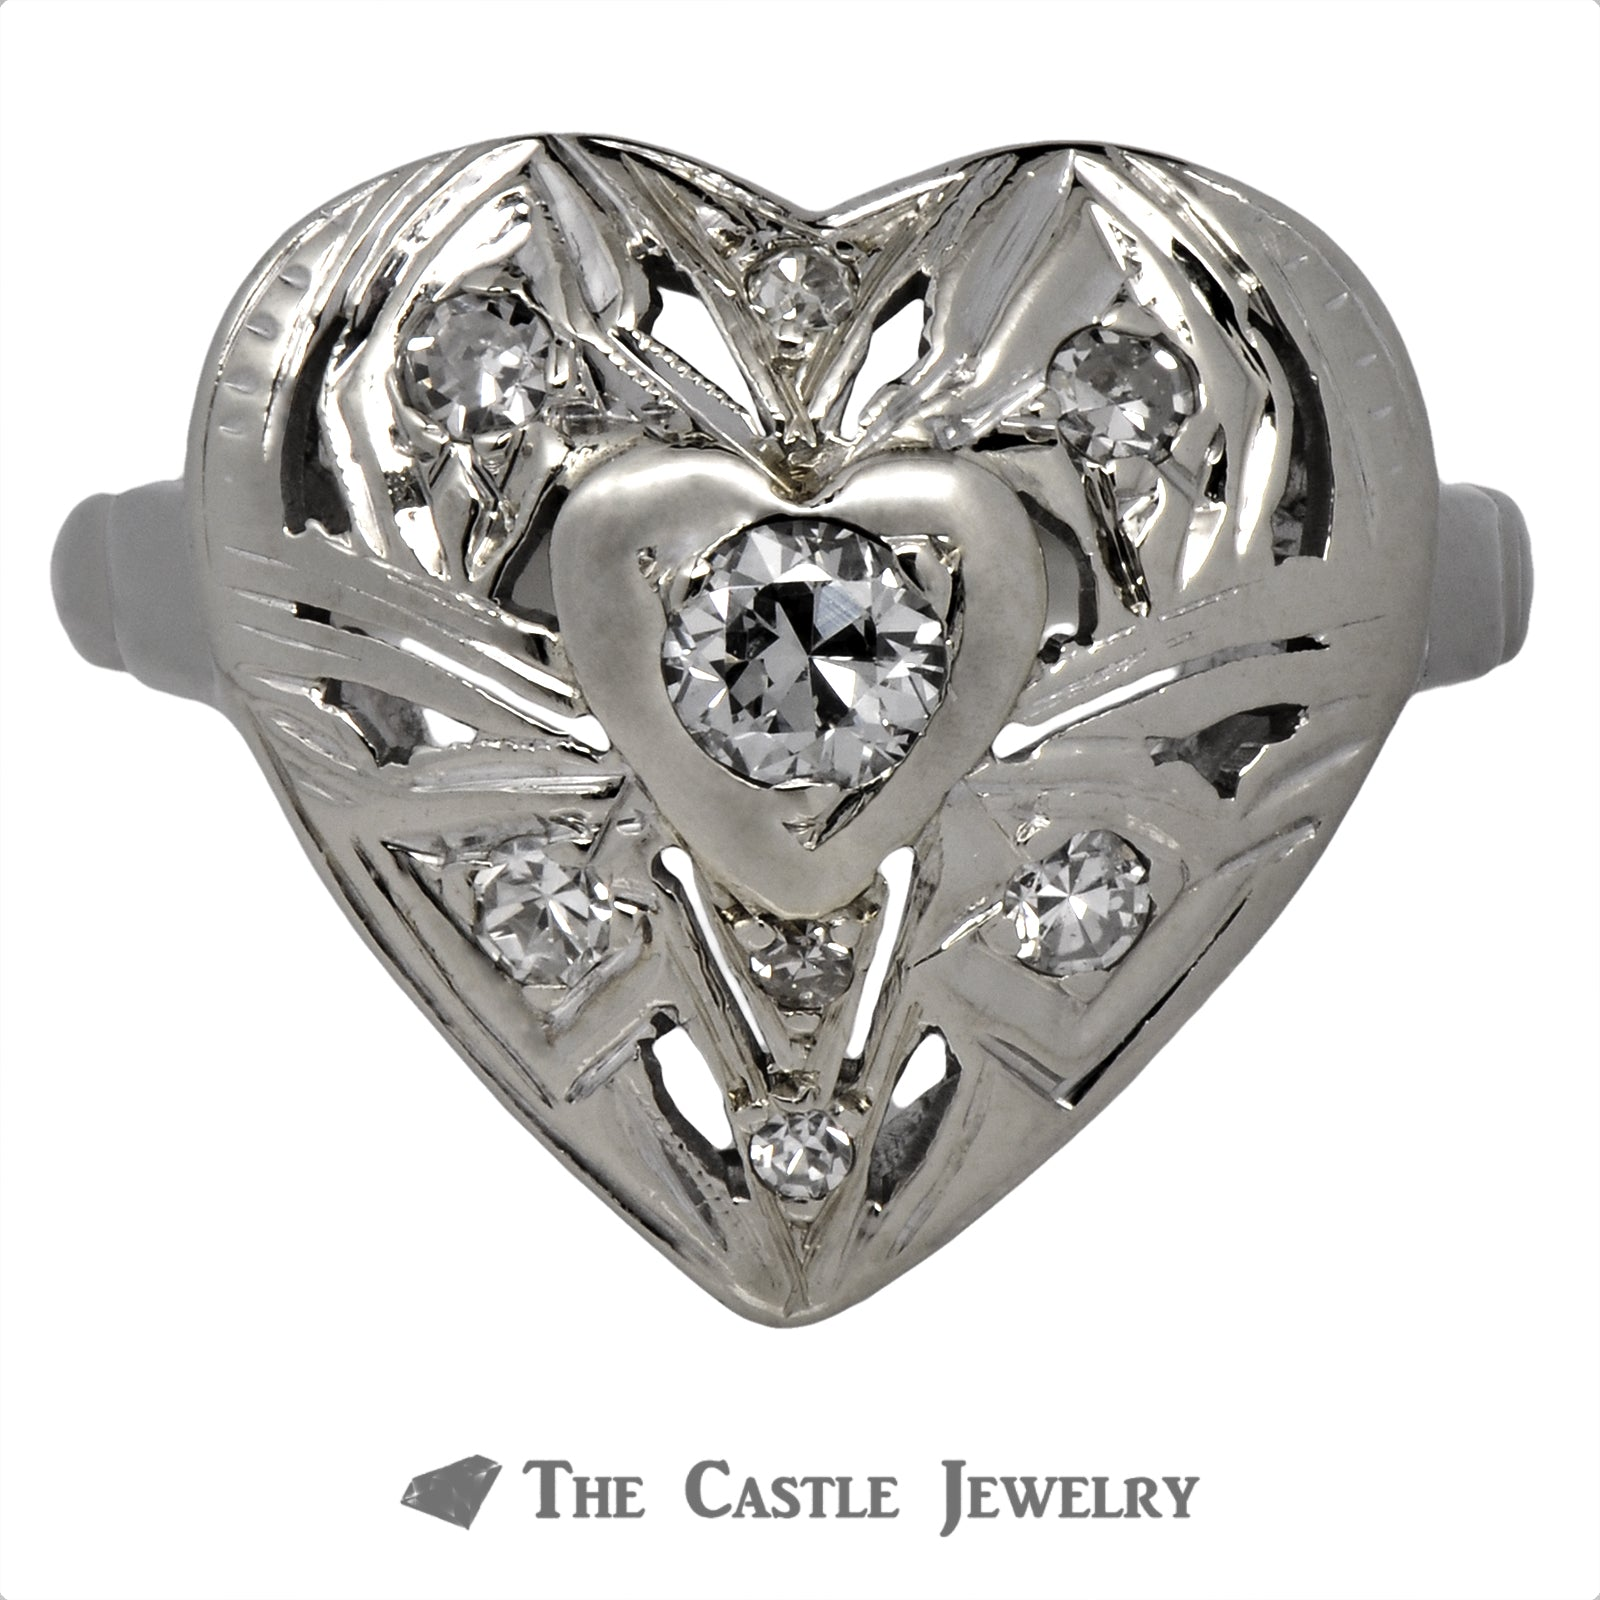 Antique Design Heart Shaped Ring with Round Brilliant Cut Diamonds